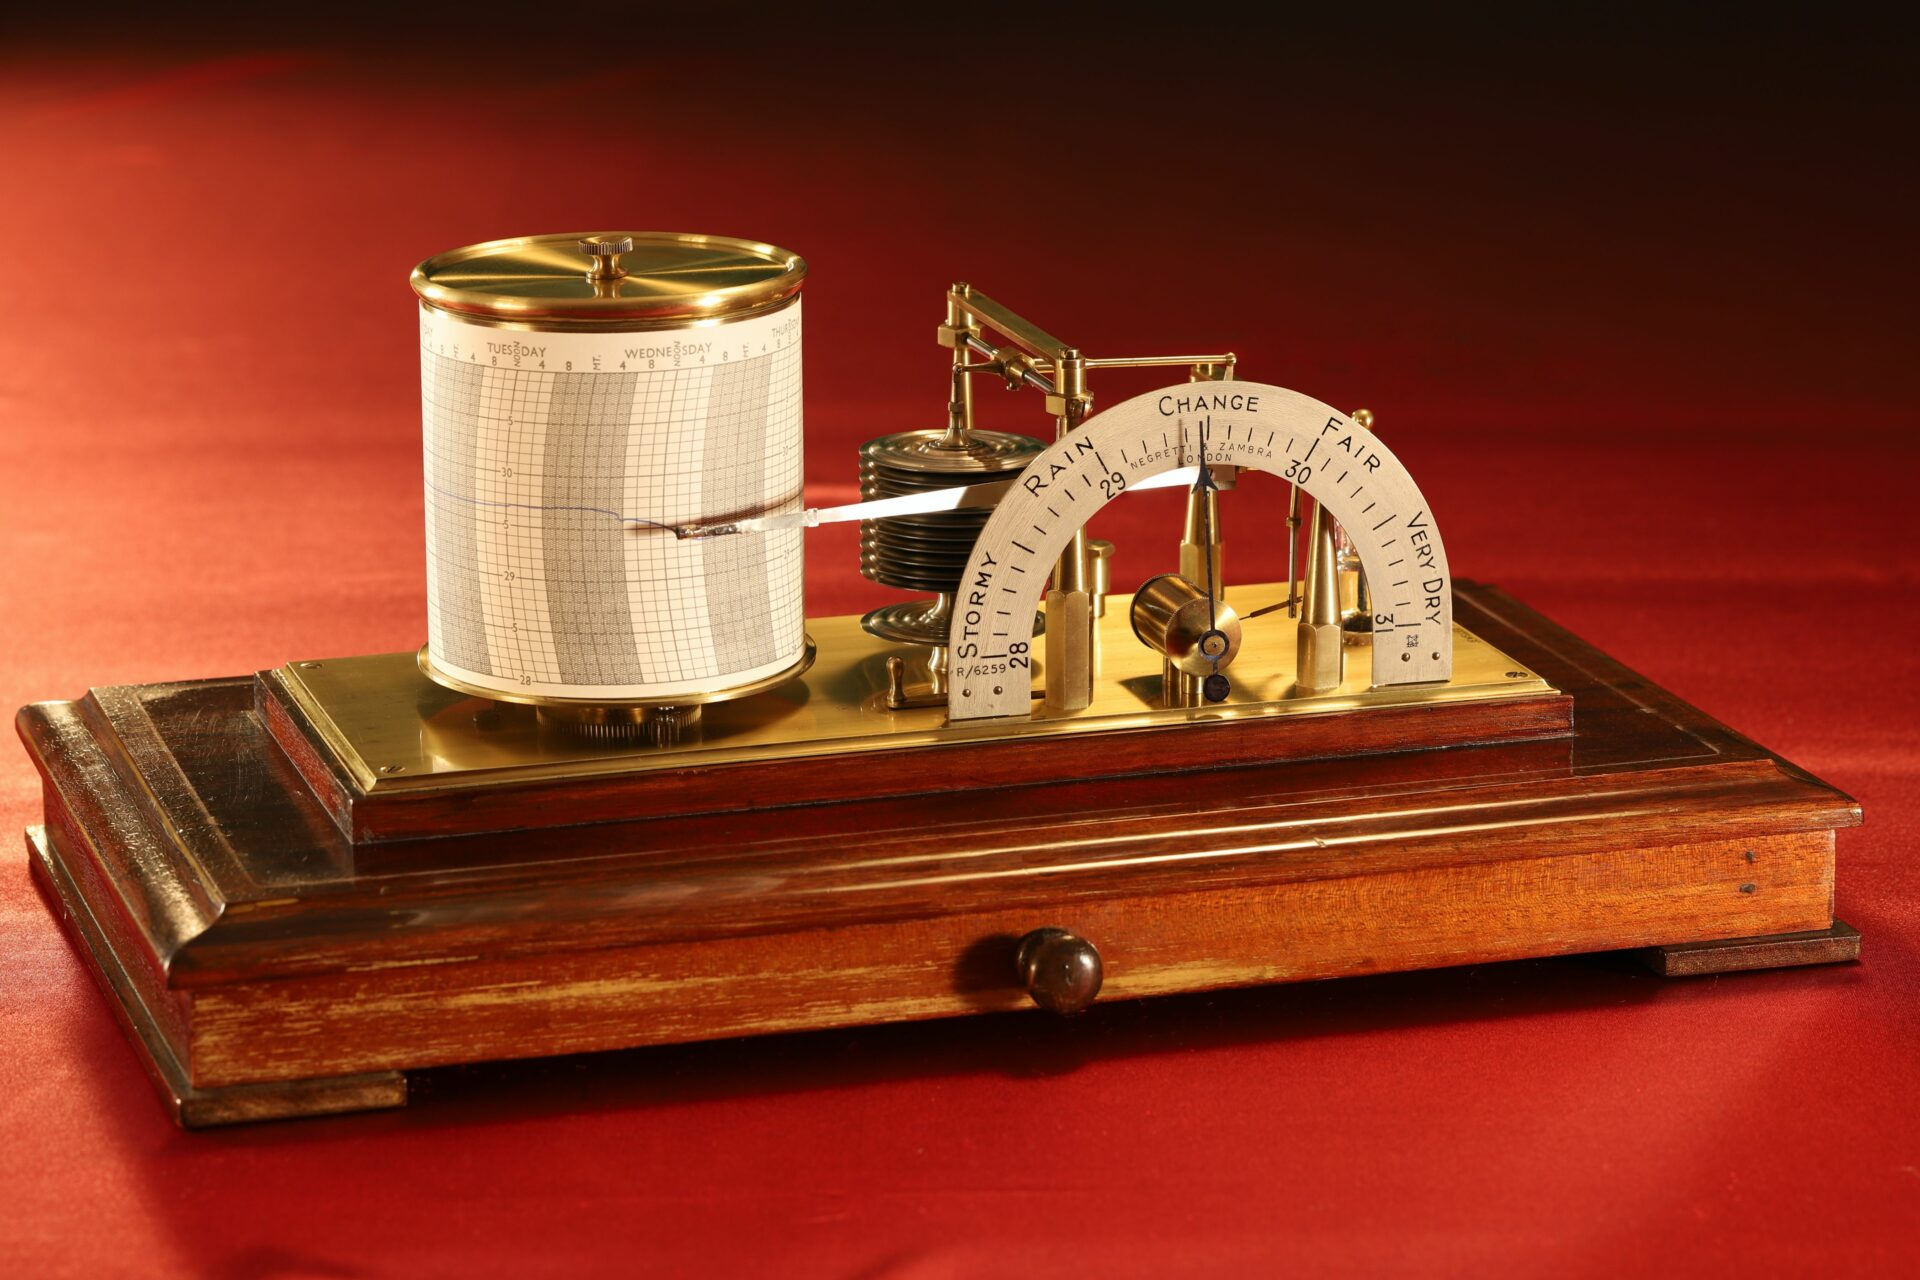 Image of Negretti & Zambra Regent Barograph No R6259 c1929 without case lid taken from left centre